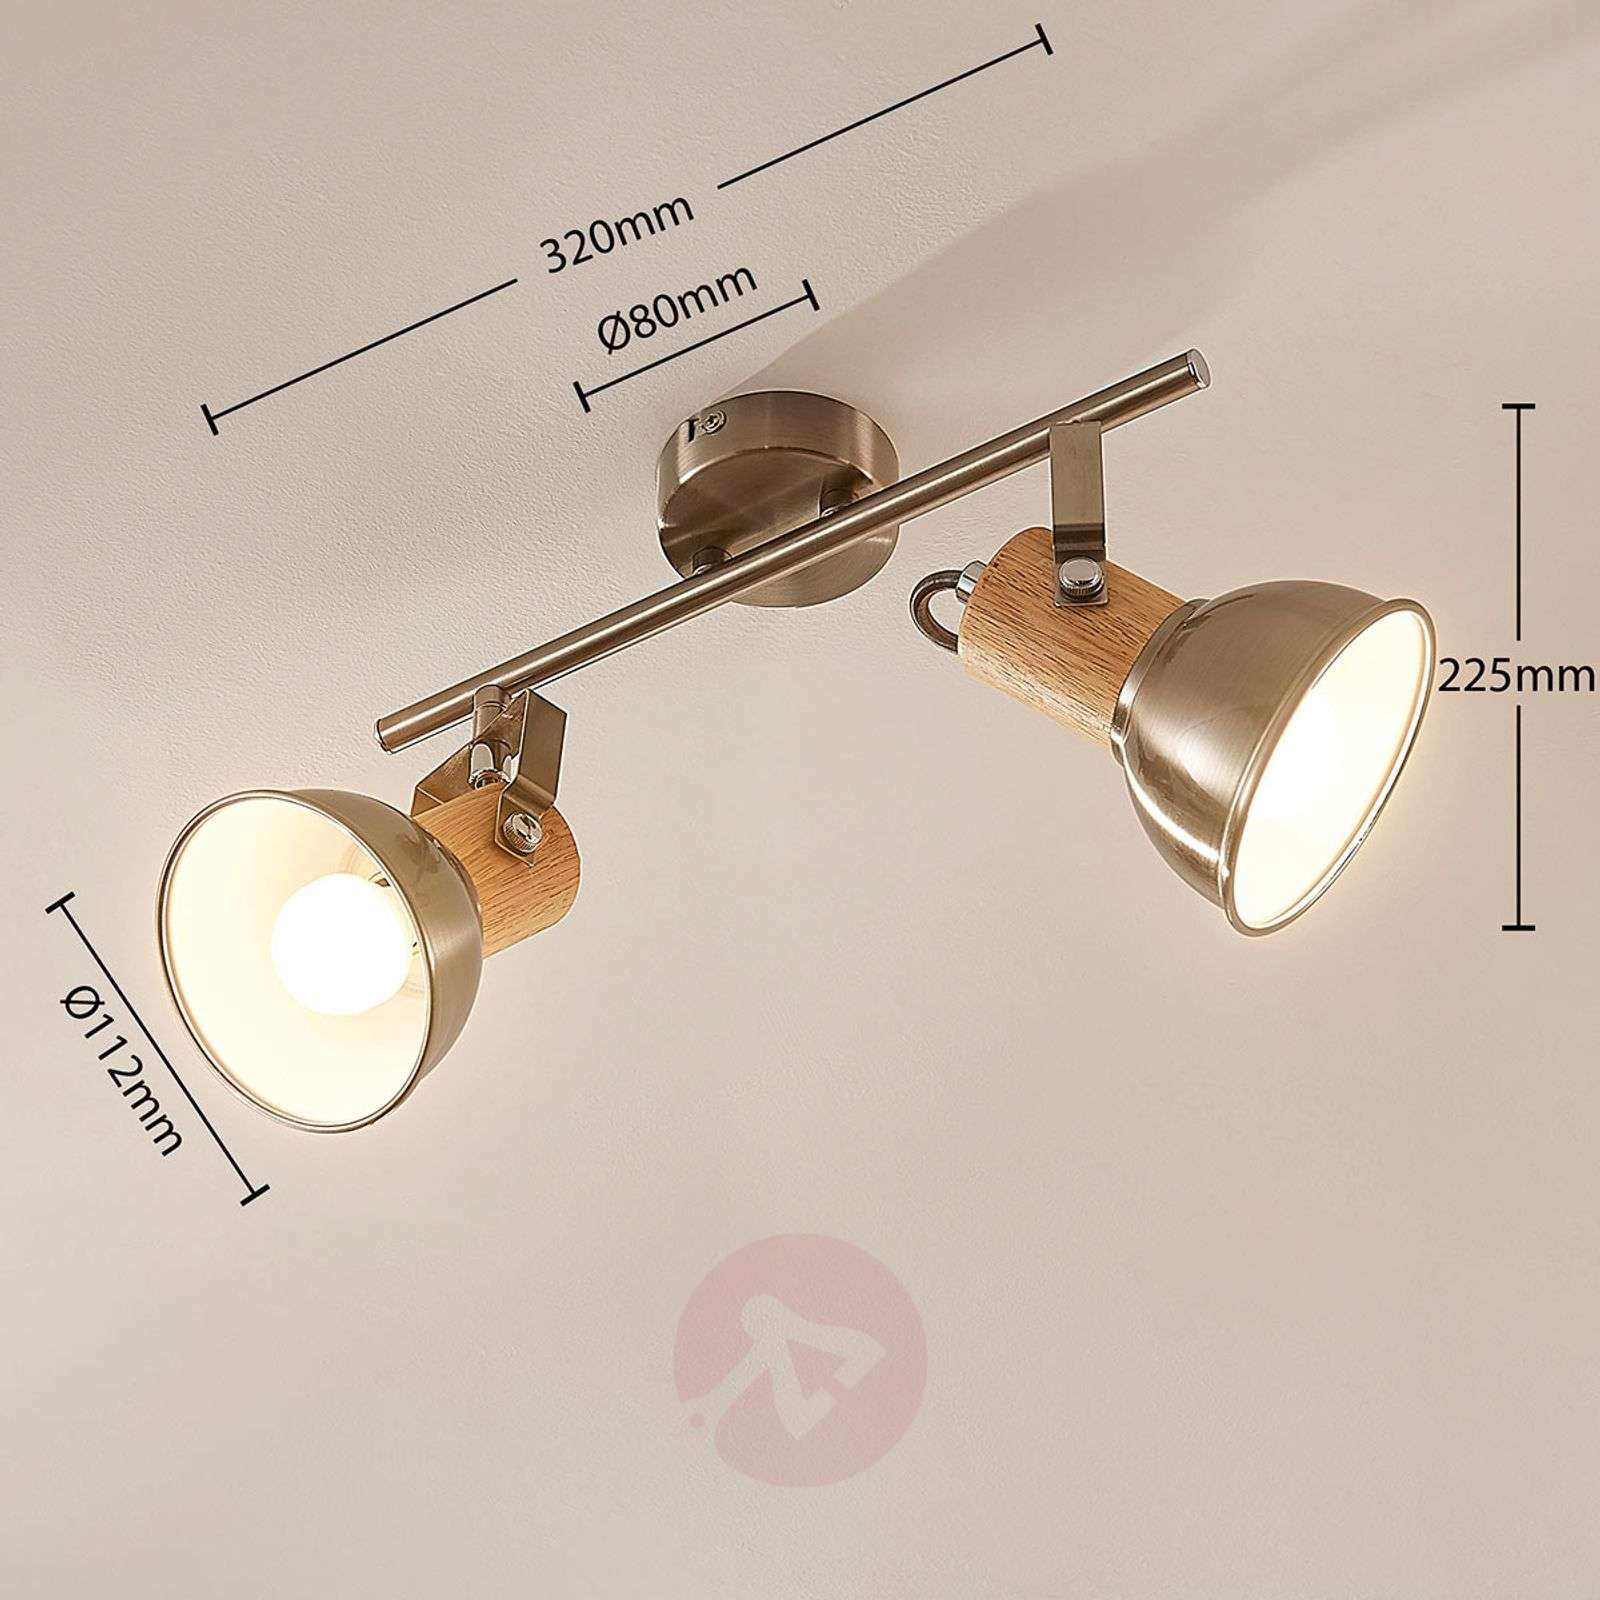 Two-bulb LED ceiling light Dennis with wood-9621817-02